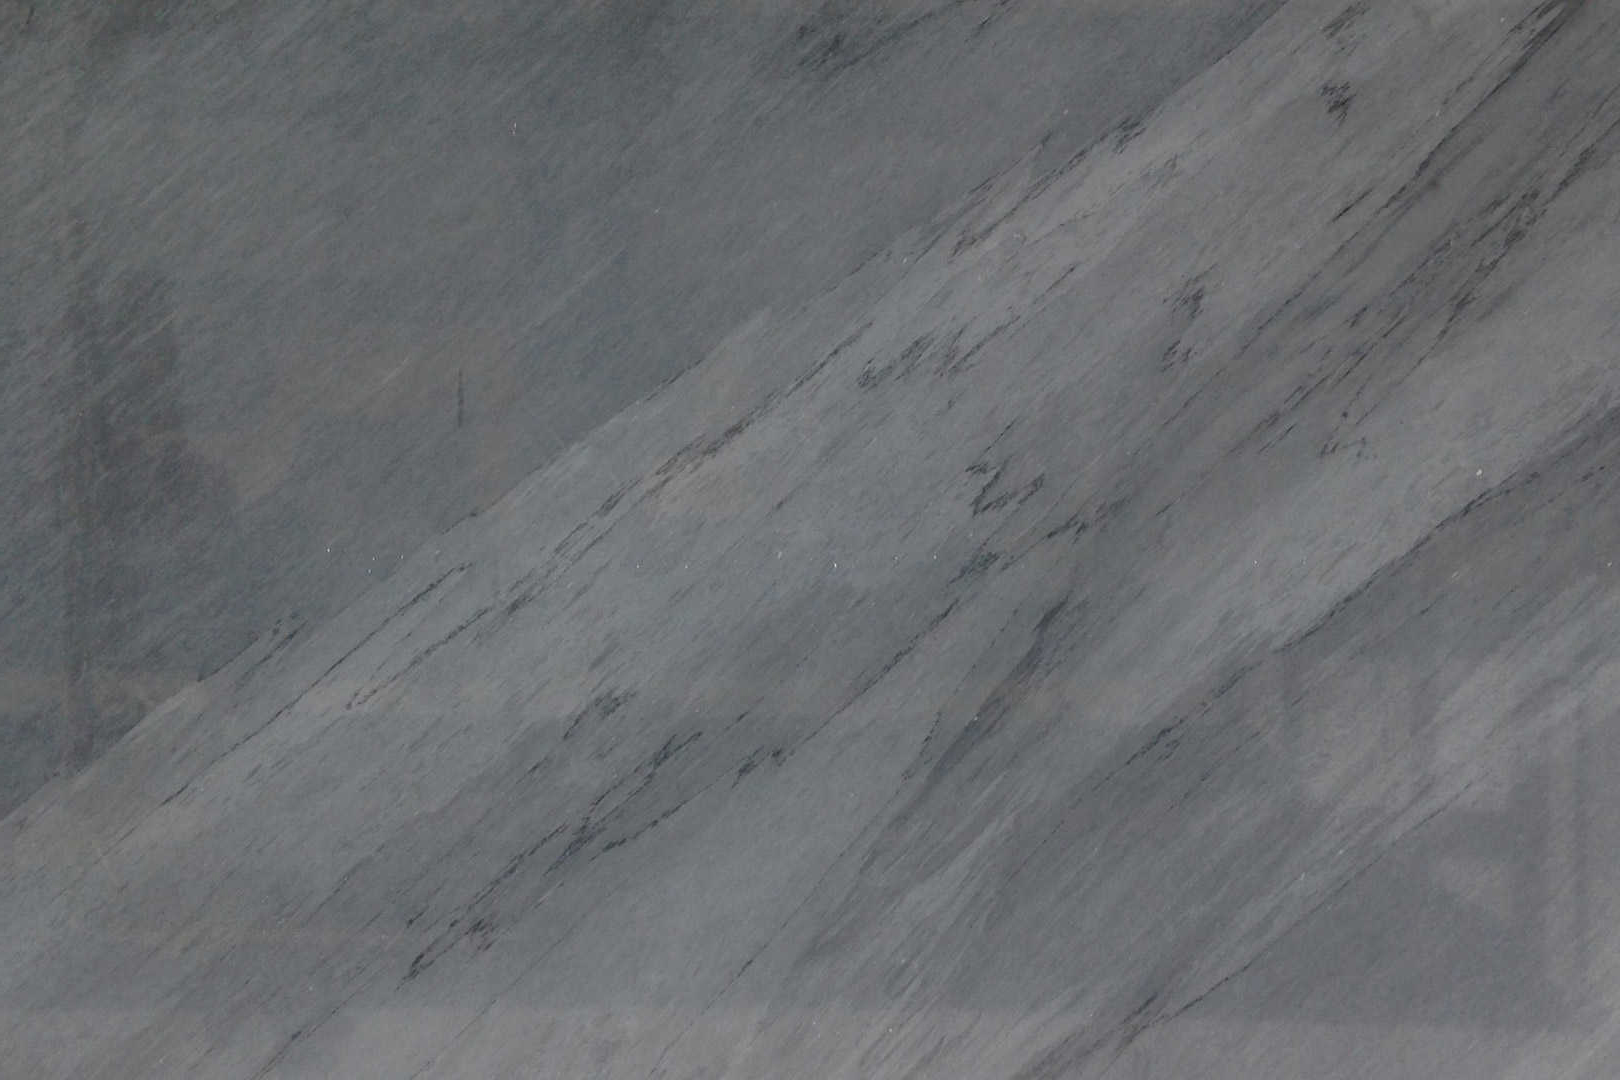 Bardiglio Imperiale Marble - Sourced from our craftsmen quarries in Tuscany. Bardiglio is a fine-grained, deep grey, cloudy marble. Bardiglio marble is an easy limestone to work with, of medium hardness. With wide range in both color and veining, it is a classic marble perfect for indoor use. Can be use in exterior only in mild clima. <ul>  	<li>Volumetric weight 2672 Kg/m3</li>  	<li>Compression strength 1372 Kg/cm2</li>  	<li>Bending strength 174 Kg/cm2</li>  	<li>Abrasion resistance 0,29 mm</li>  	<li>Absorption 3,27 %o by weight</li>  	<li>Coeff. thermal expansion 0,0042 mm./m. oC</li> </ul> | Matter of Stuff